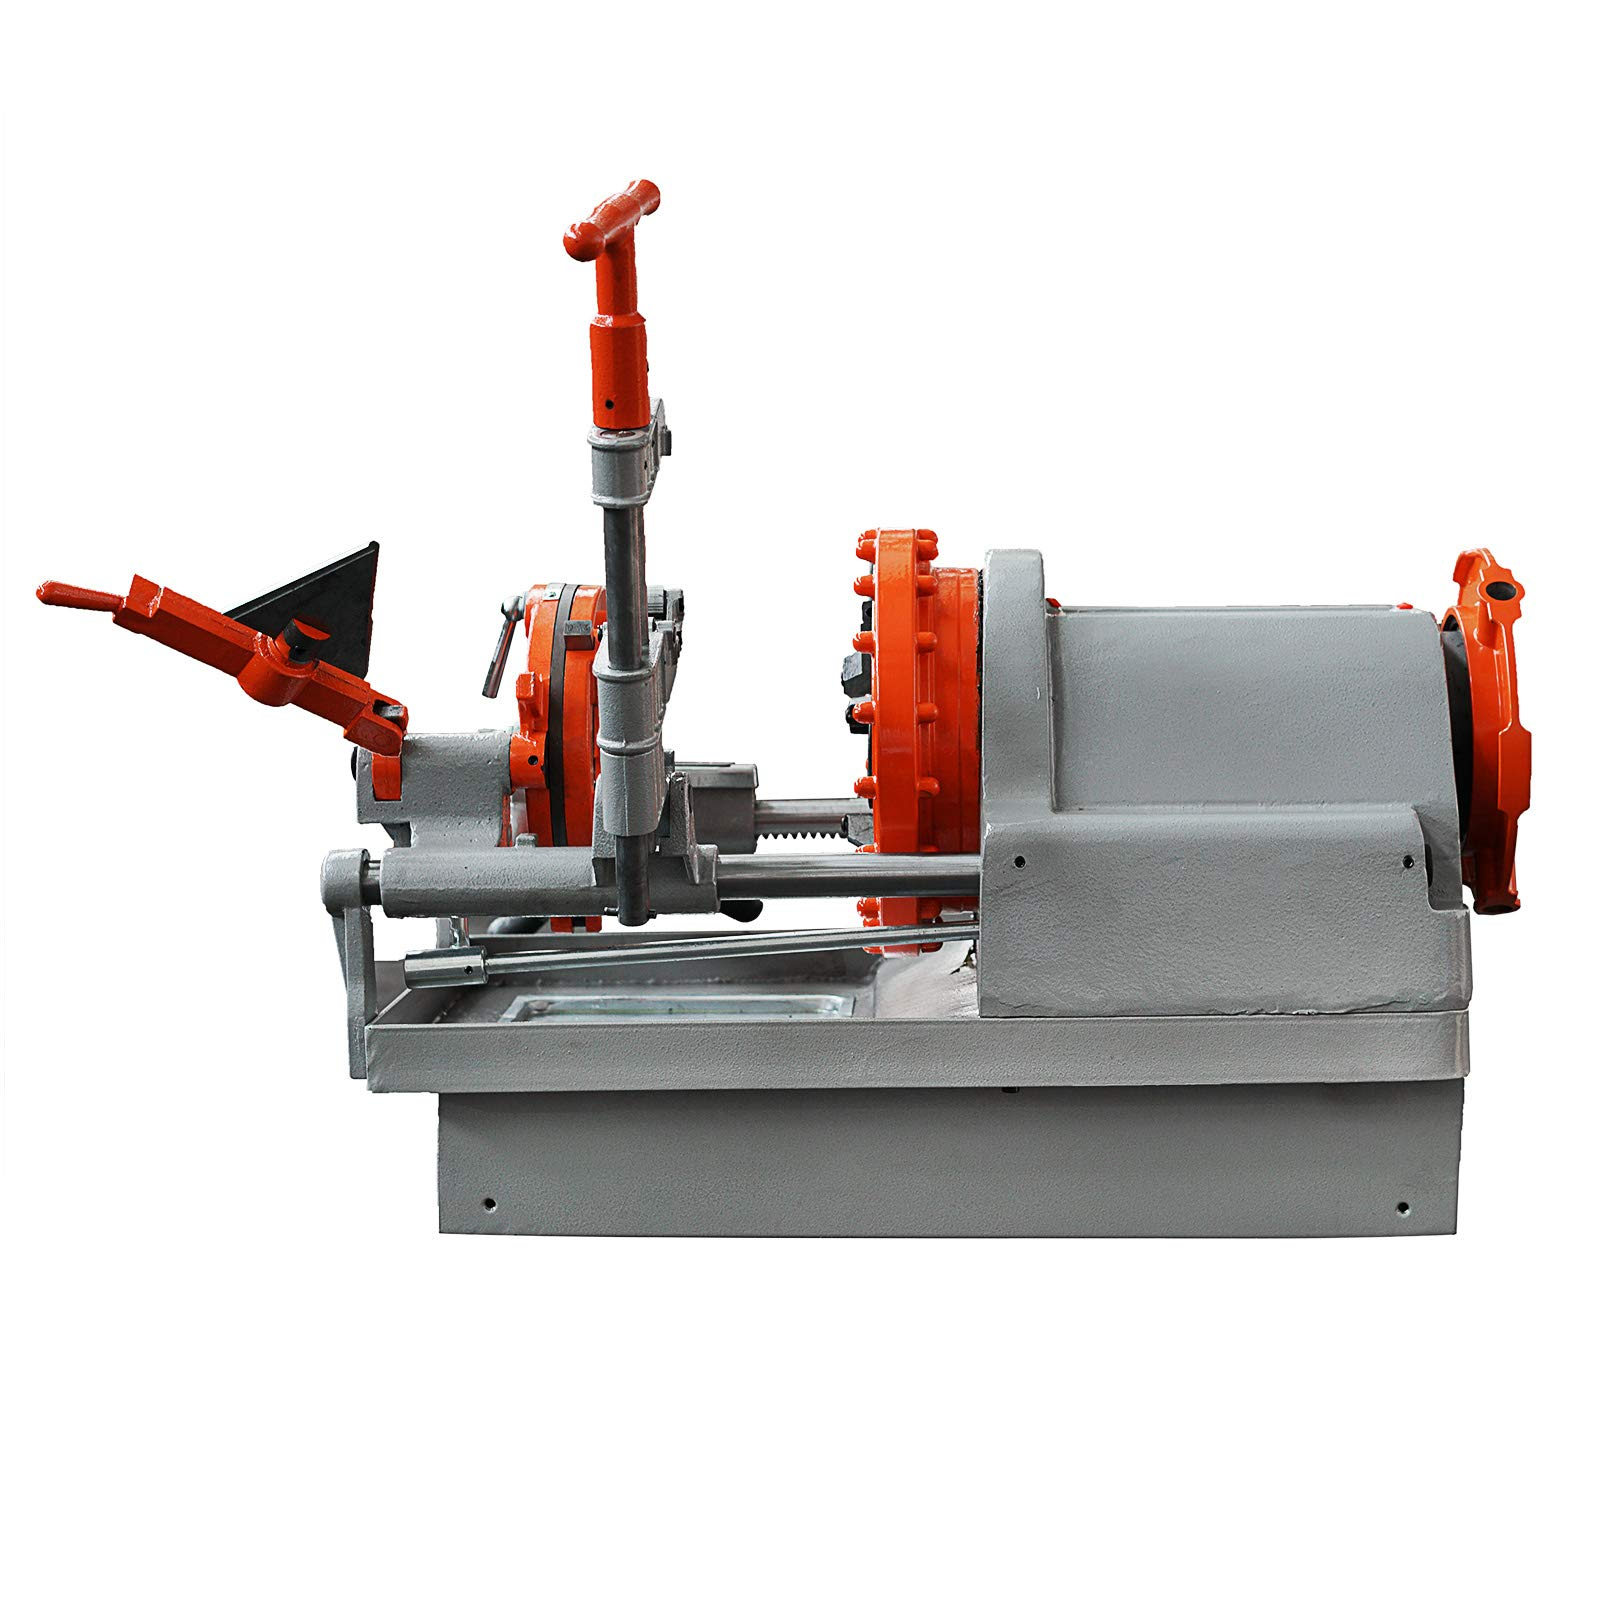 Mophorn Electric Pipe Threading Machine 1/2''-4'' Pipe Threading Cutter 750W Deburrer NPT P100 Upstanding by Mophorn (Image #2)